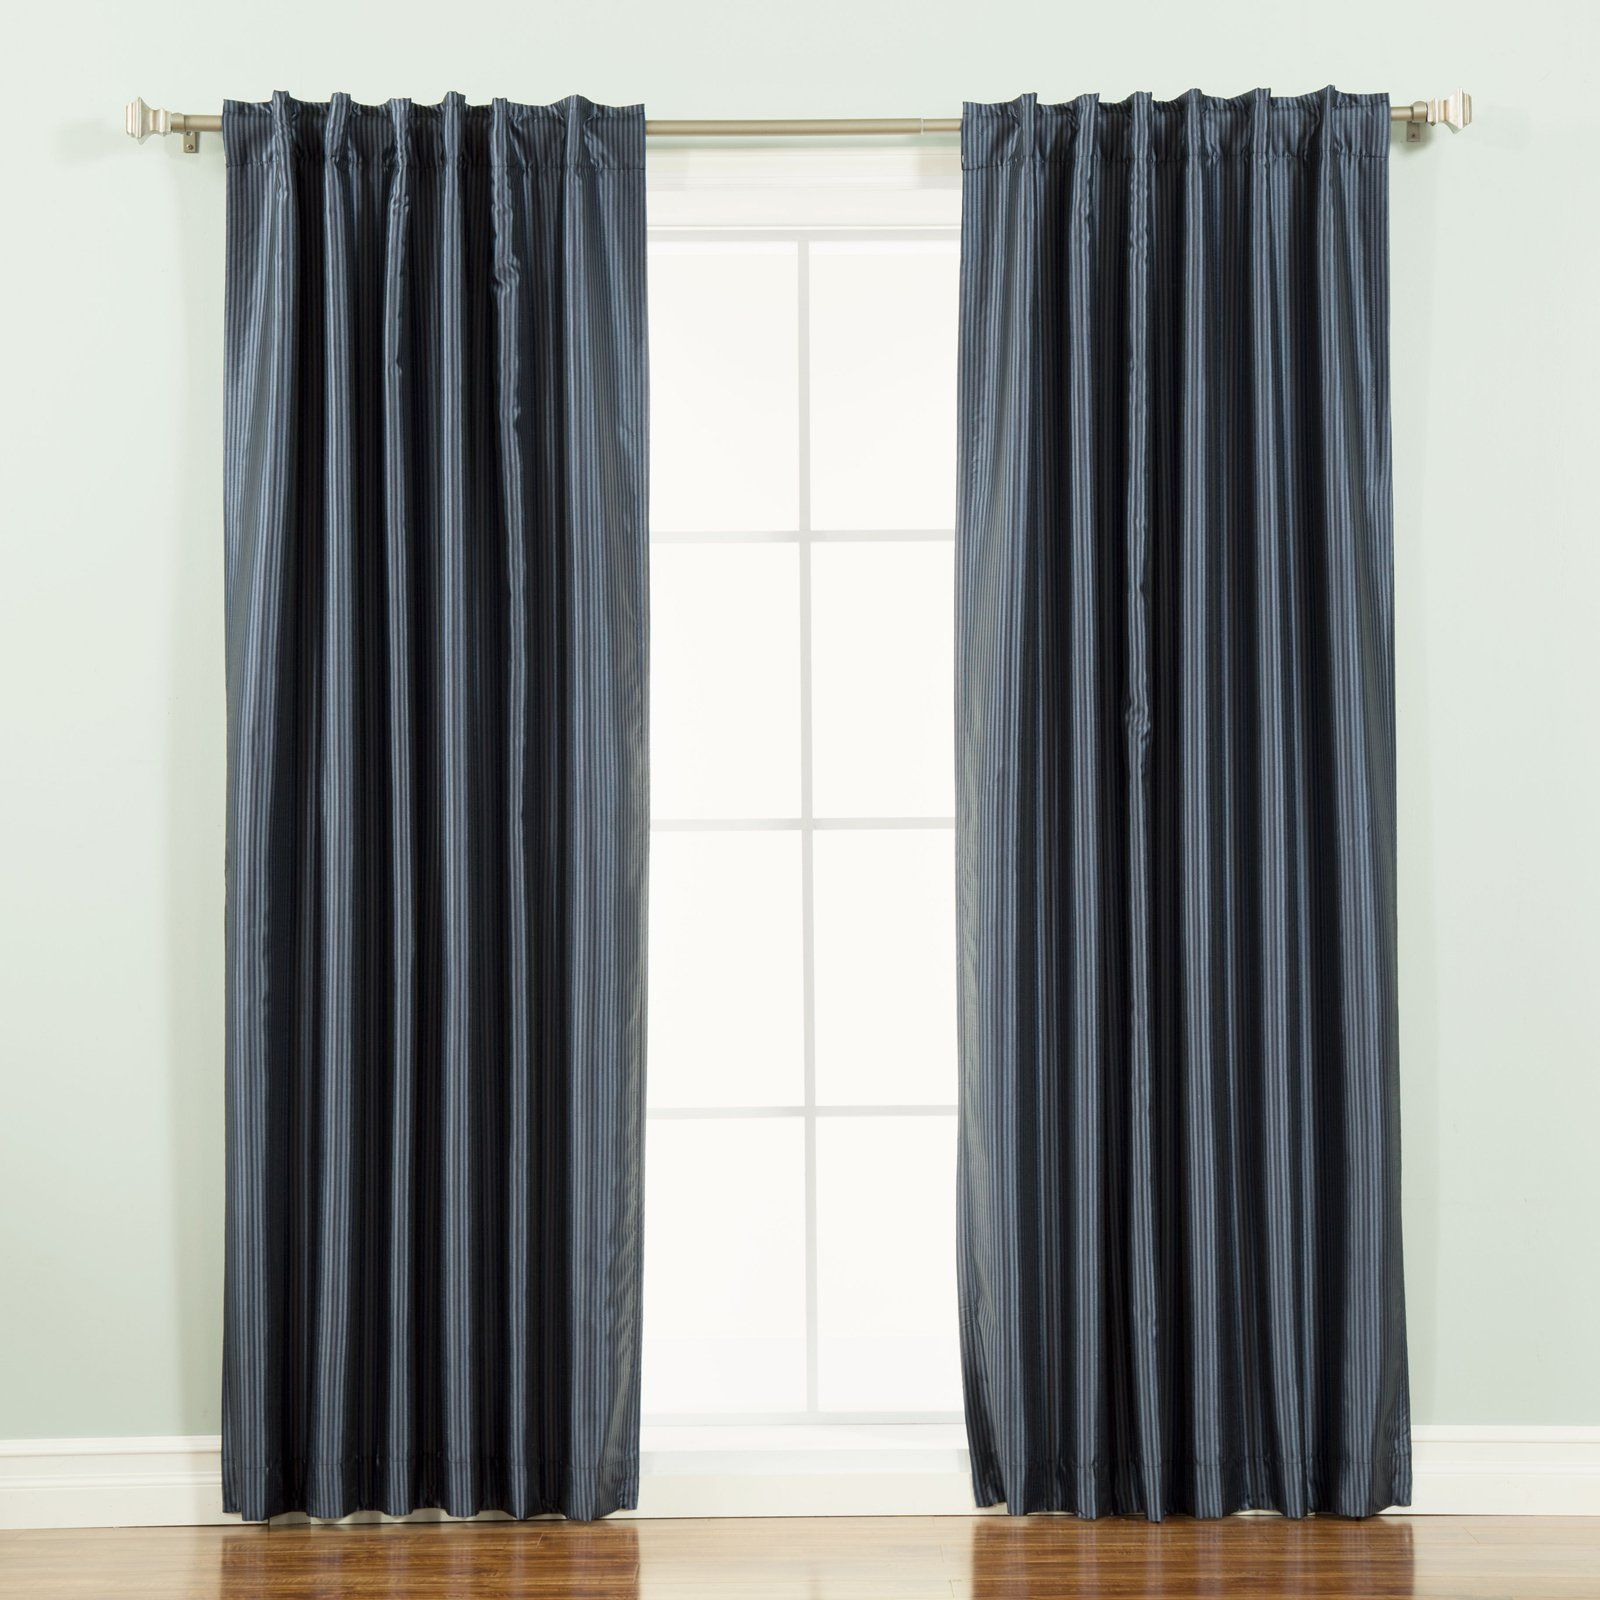 Best Home Fashion Faux Silk Candy Stripe Blackout Curtain Panel Sage Panel Curtains Colorful Curtains Thermal Curtains